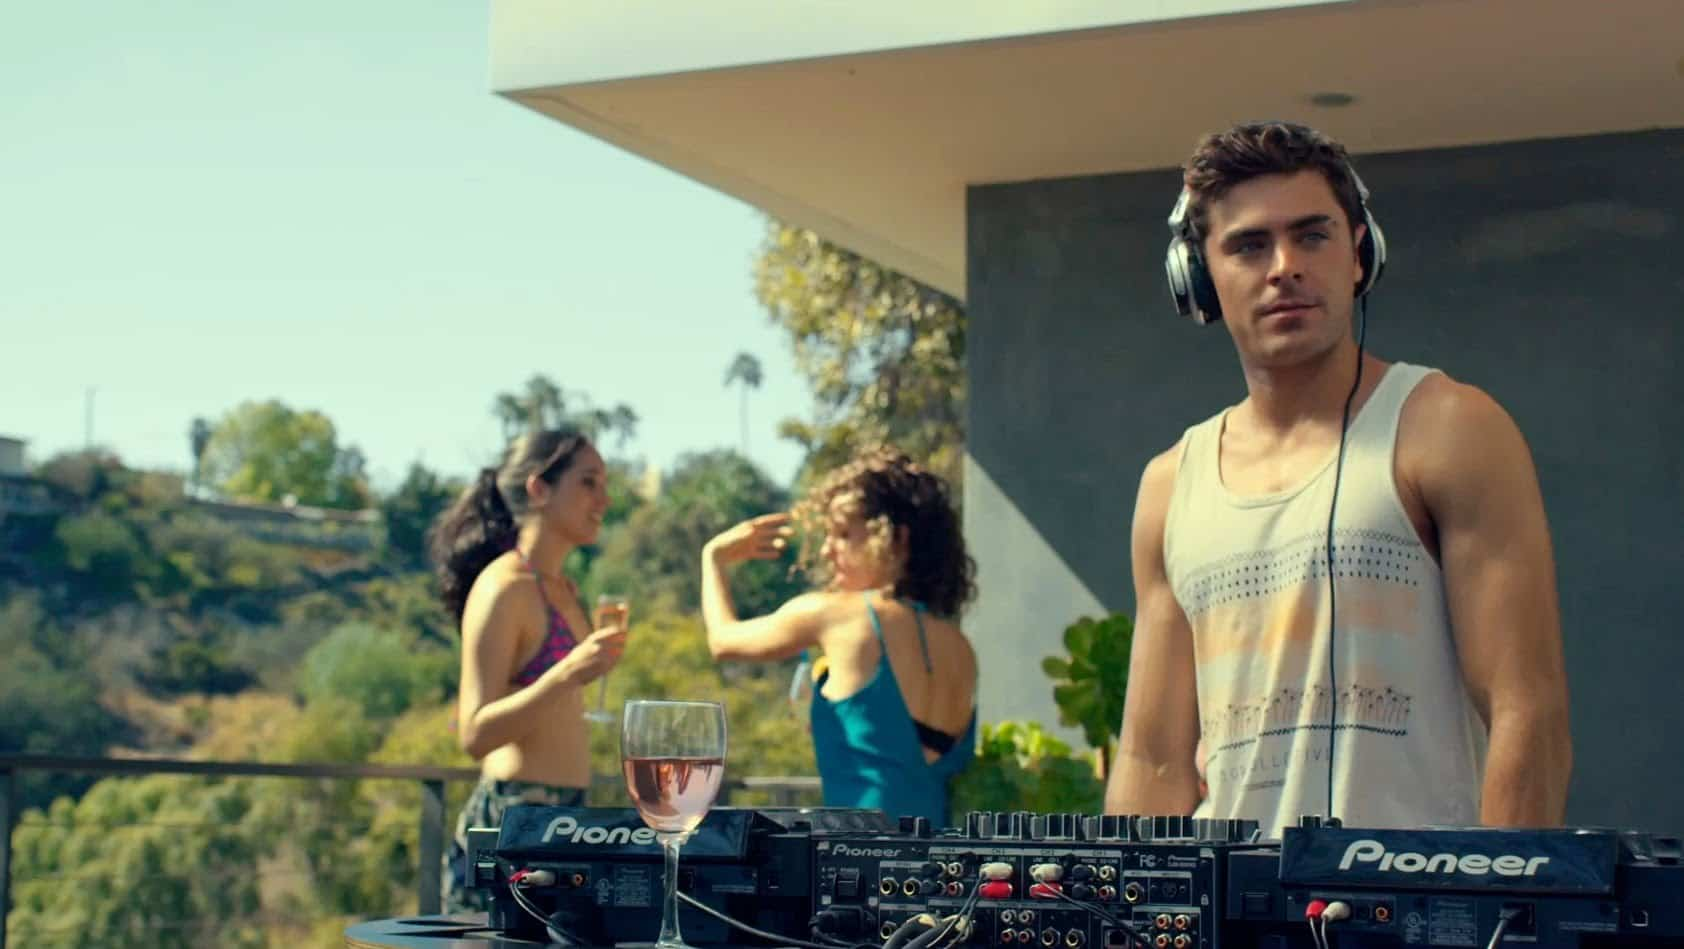 Zac Effron joins the DJ celebrity list! Please call the internet police